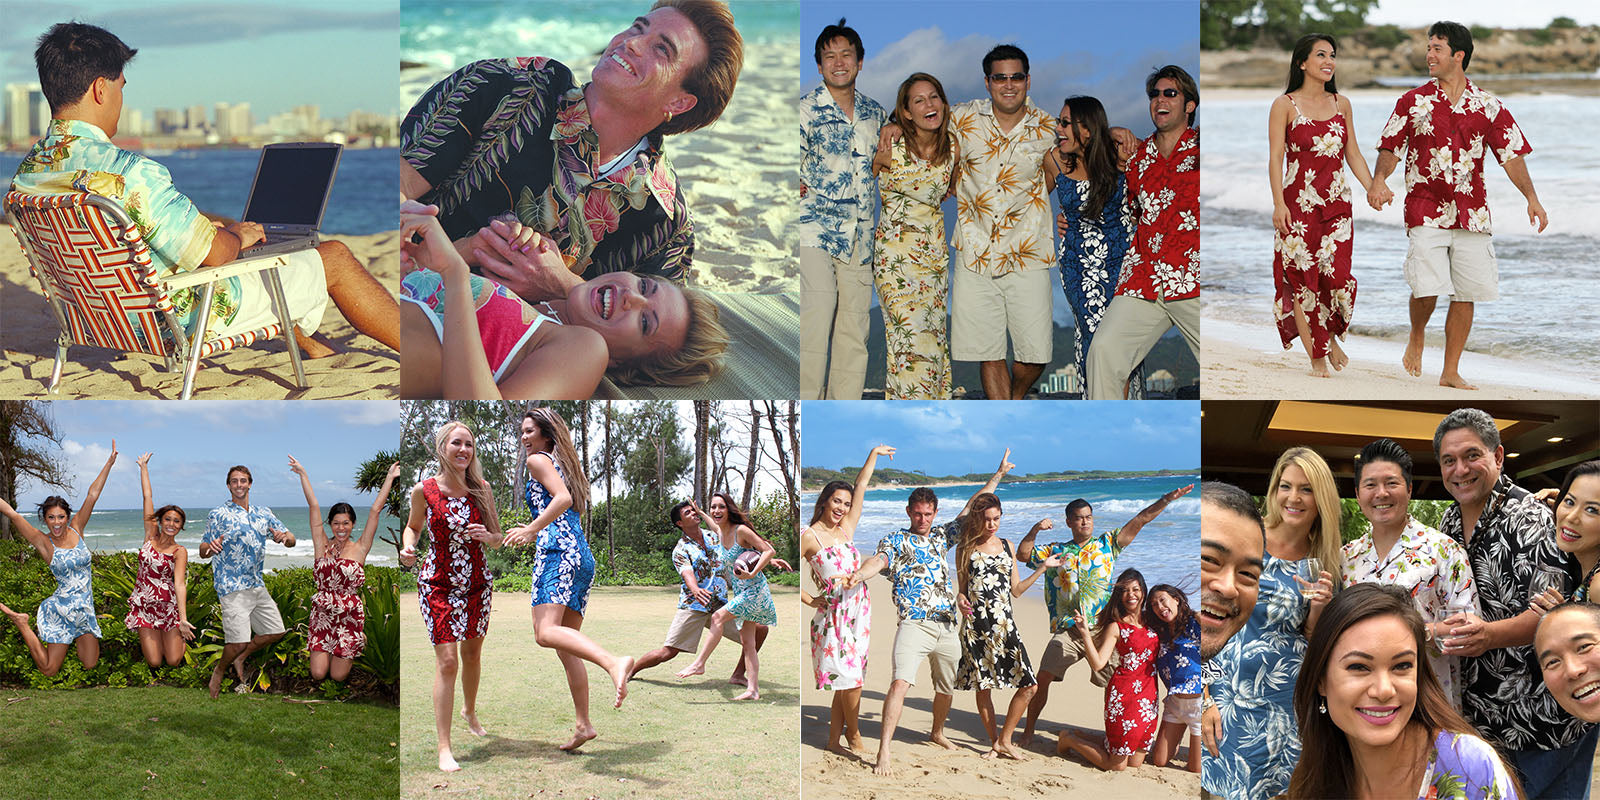 Fun times in Hawaiian shirts and dresses over the years